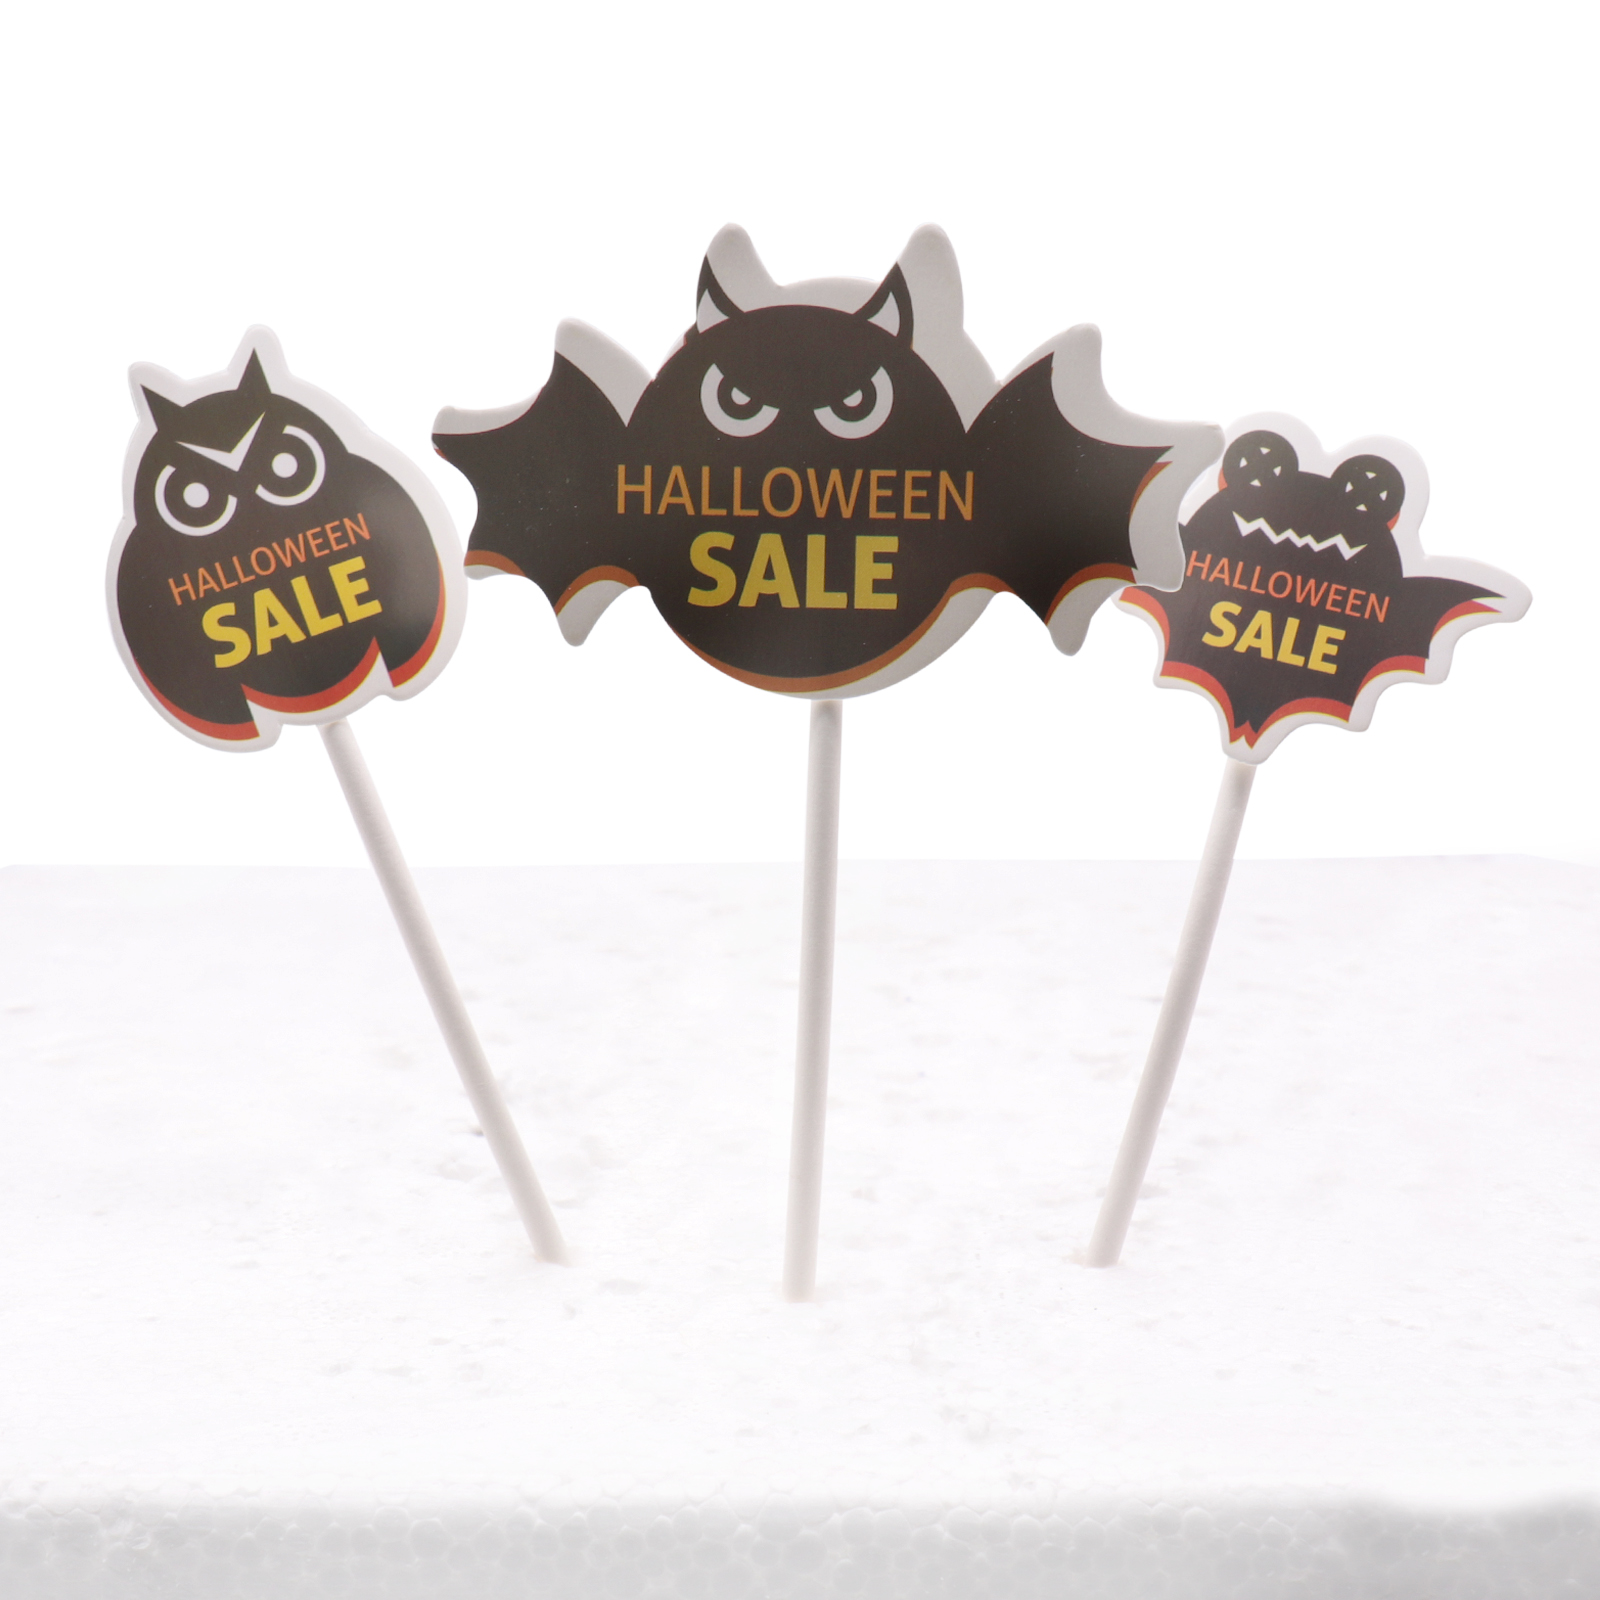 Halloween decorations Spider ,<font><b>black</b></font> <font><b>cat</b></font> ,skull ,bat ,ghost ,witch hat paper <font><b>cake</b></font> <font><b>topper</b></font> Ghost festival <font><b>cake</b></font> decorations party image